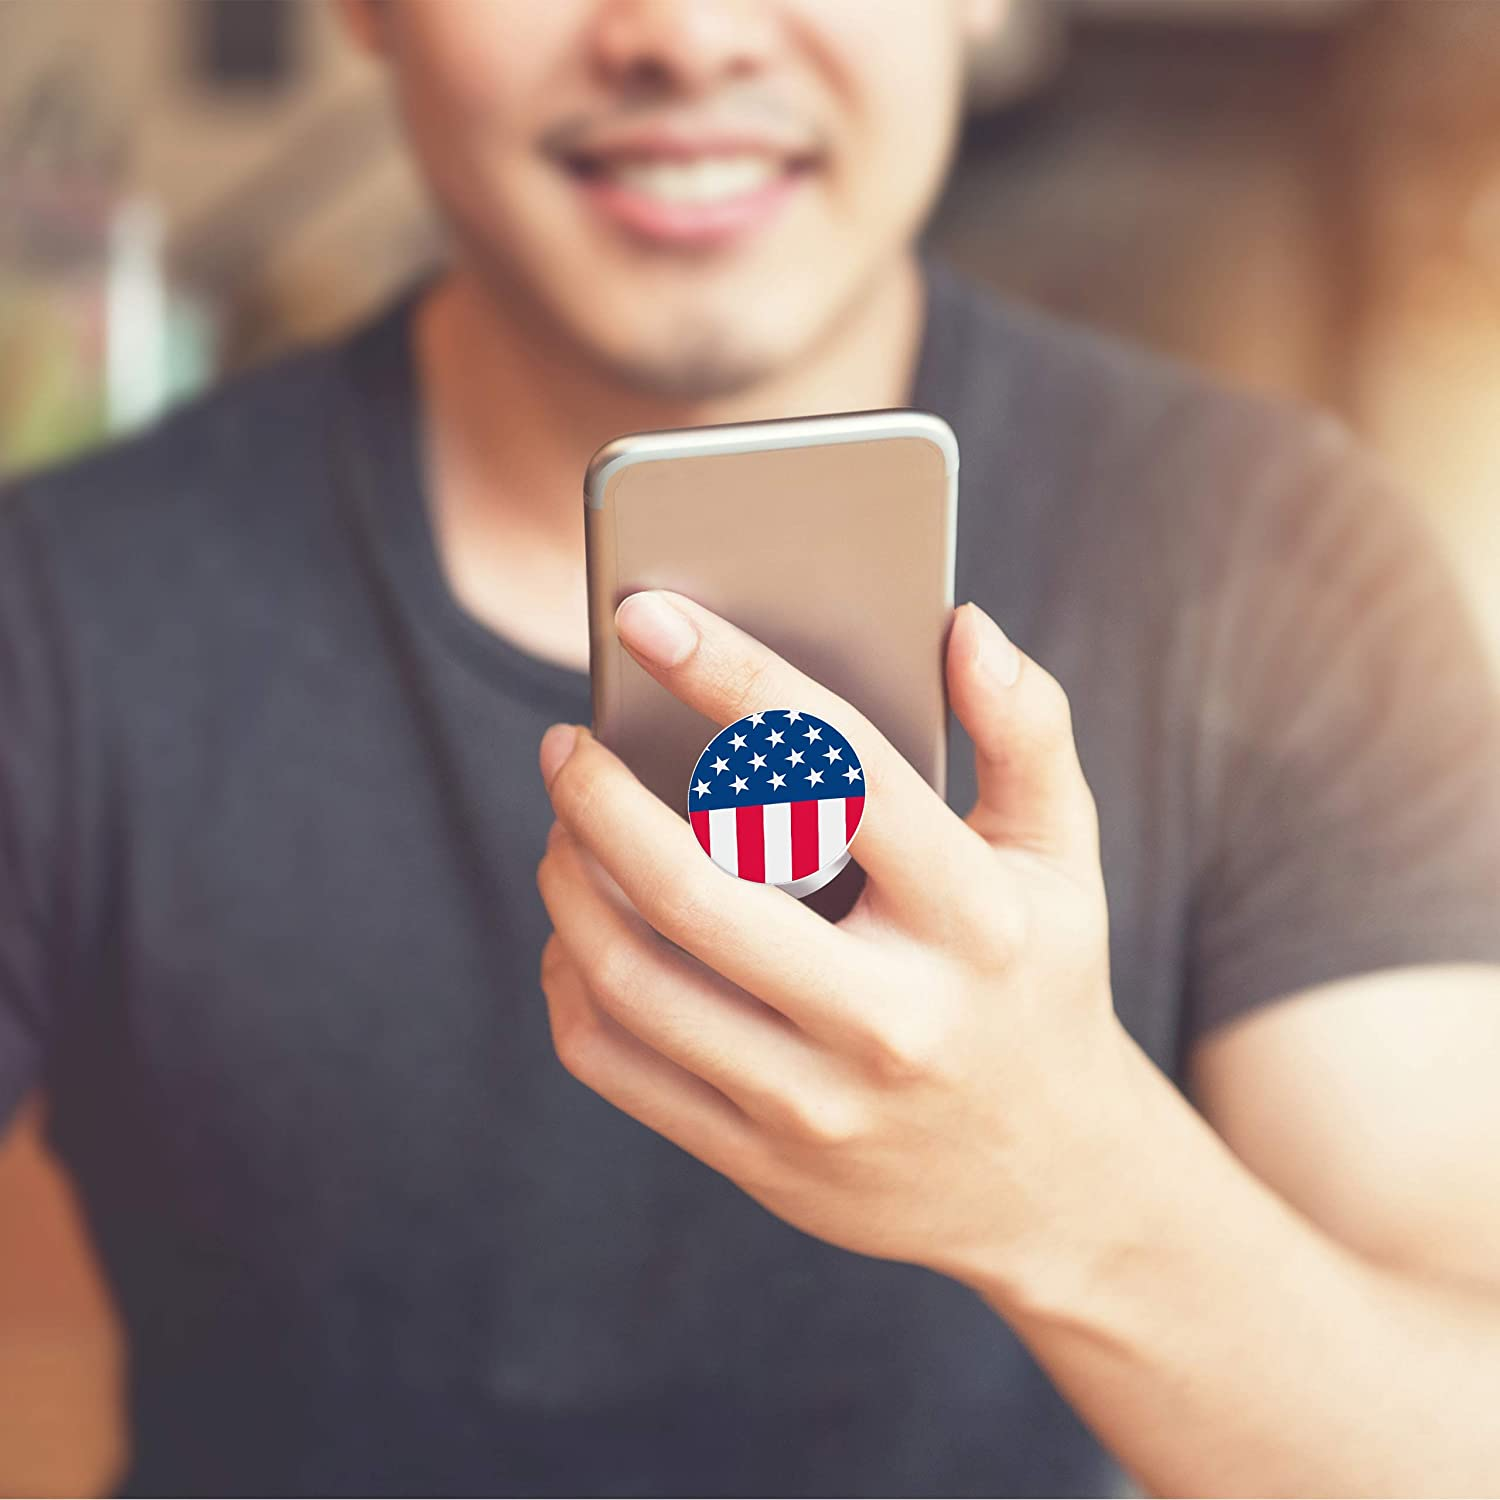 Cool and Fun USA Pack. blugoat designs 2 Pack PopSocket Stickers to Customize Your Pop Grip Affordable Way to Change The Design on Your PopSocket